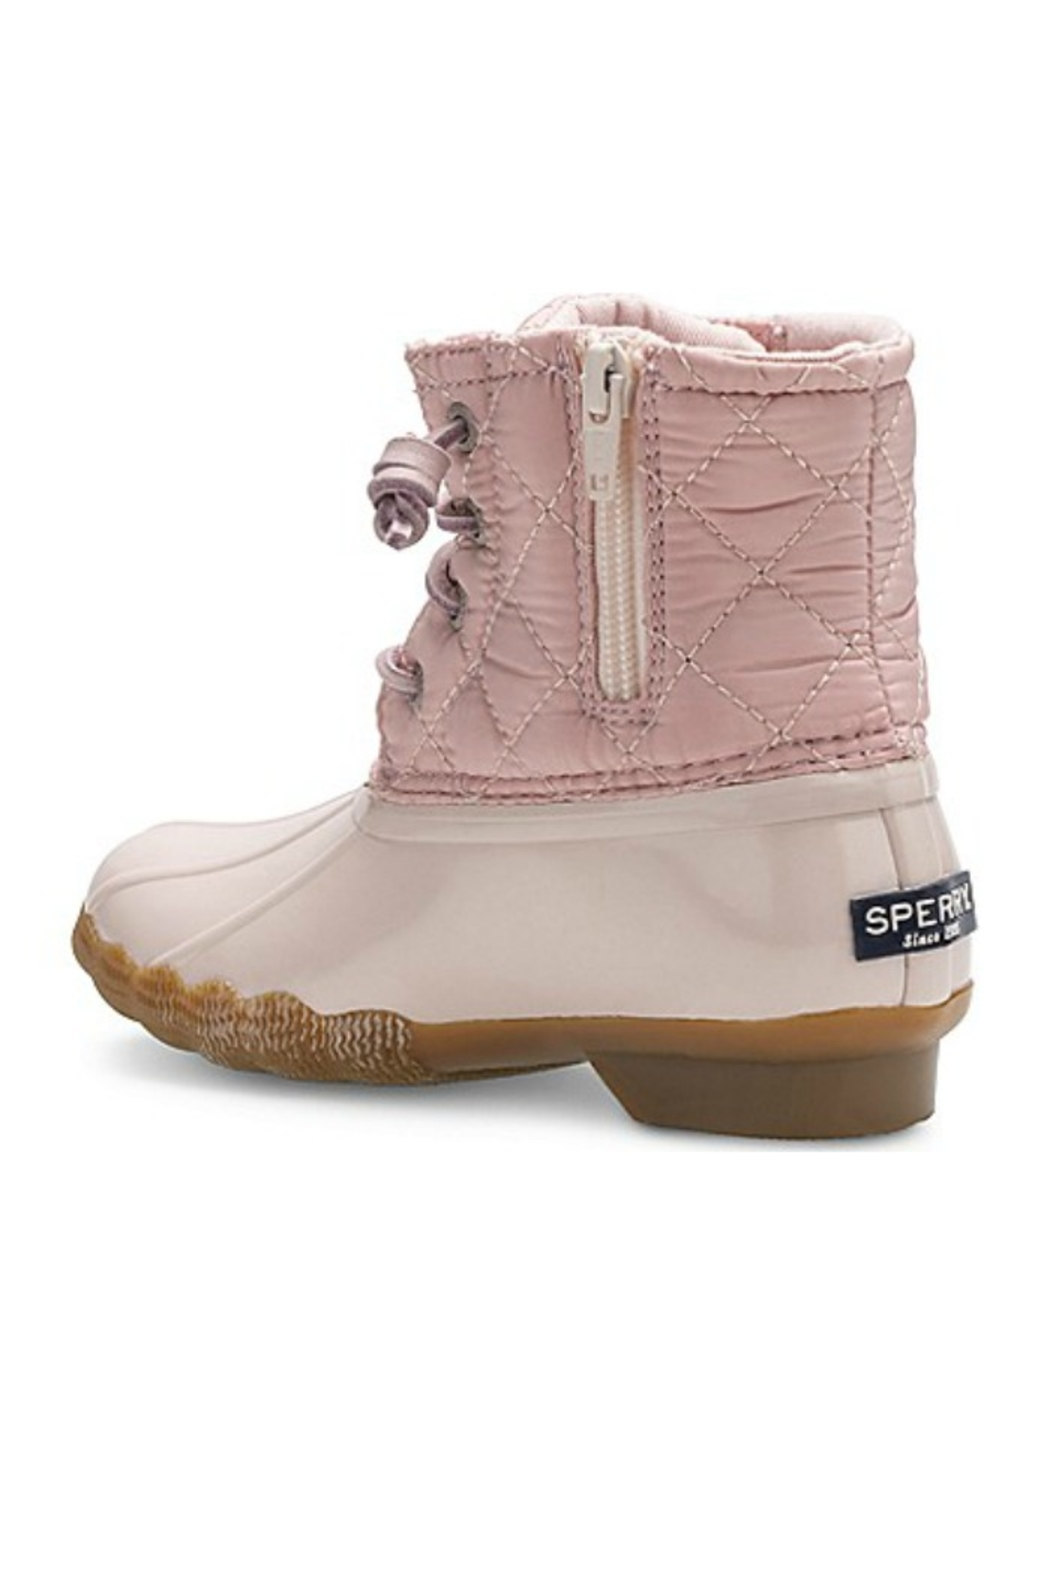 Sperry Big Kid's Saltwater Boot in Blush - Front Full Image